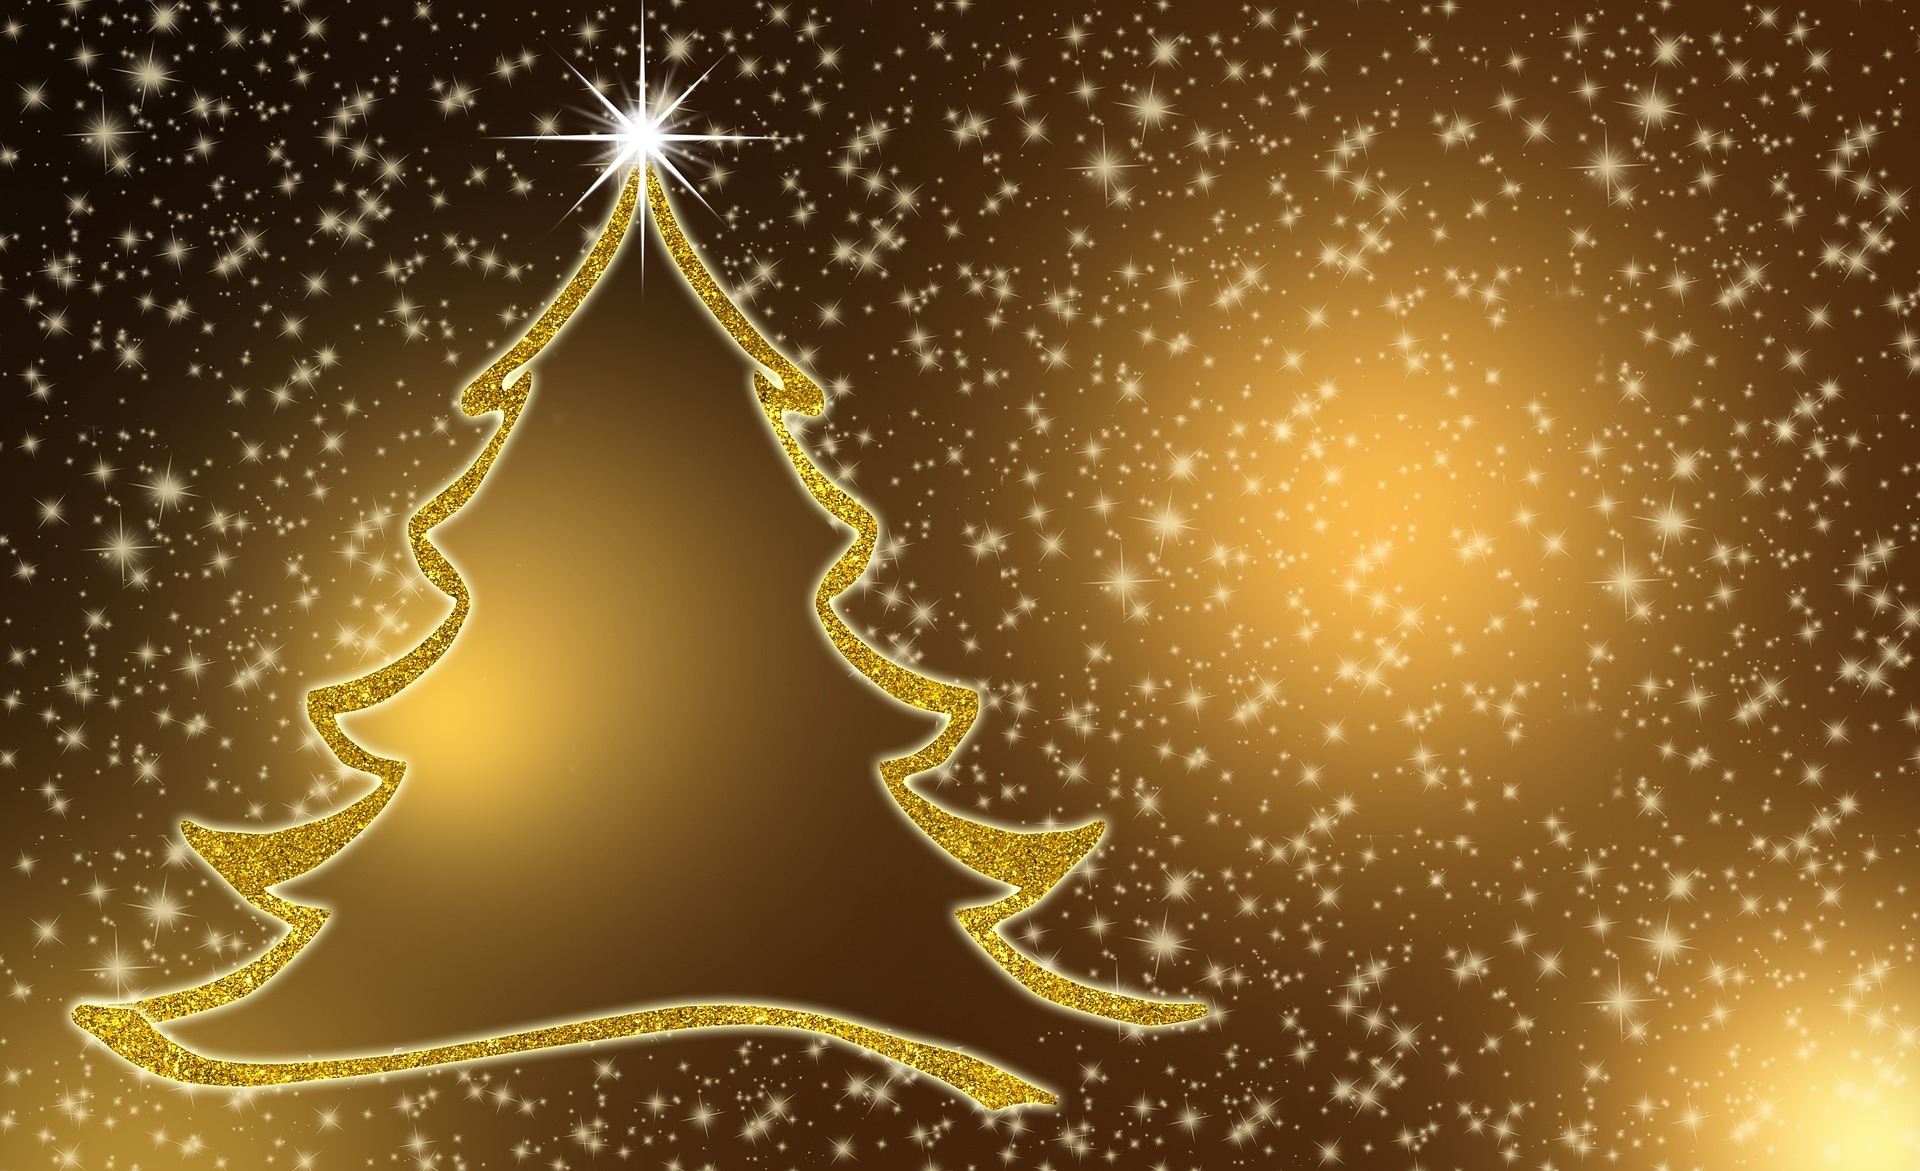 Lighting the Tree - 2020 Christmas Events for the Family